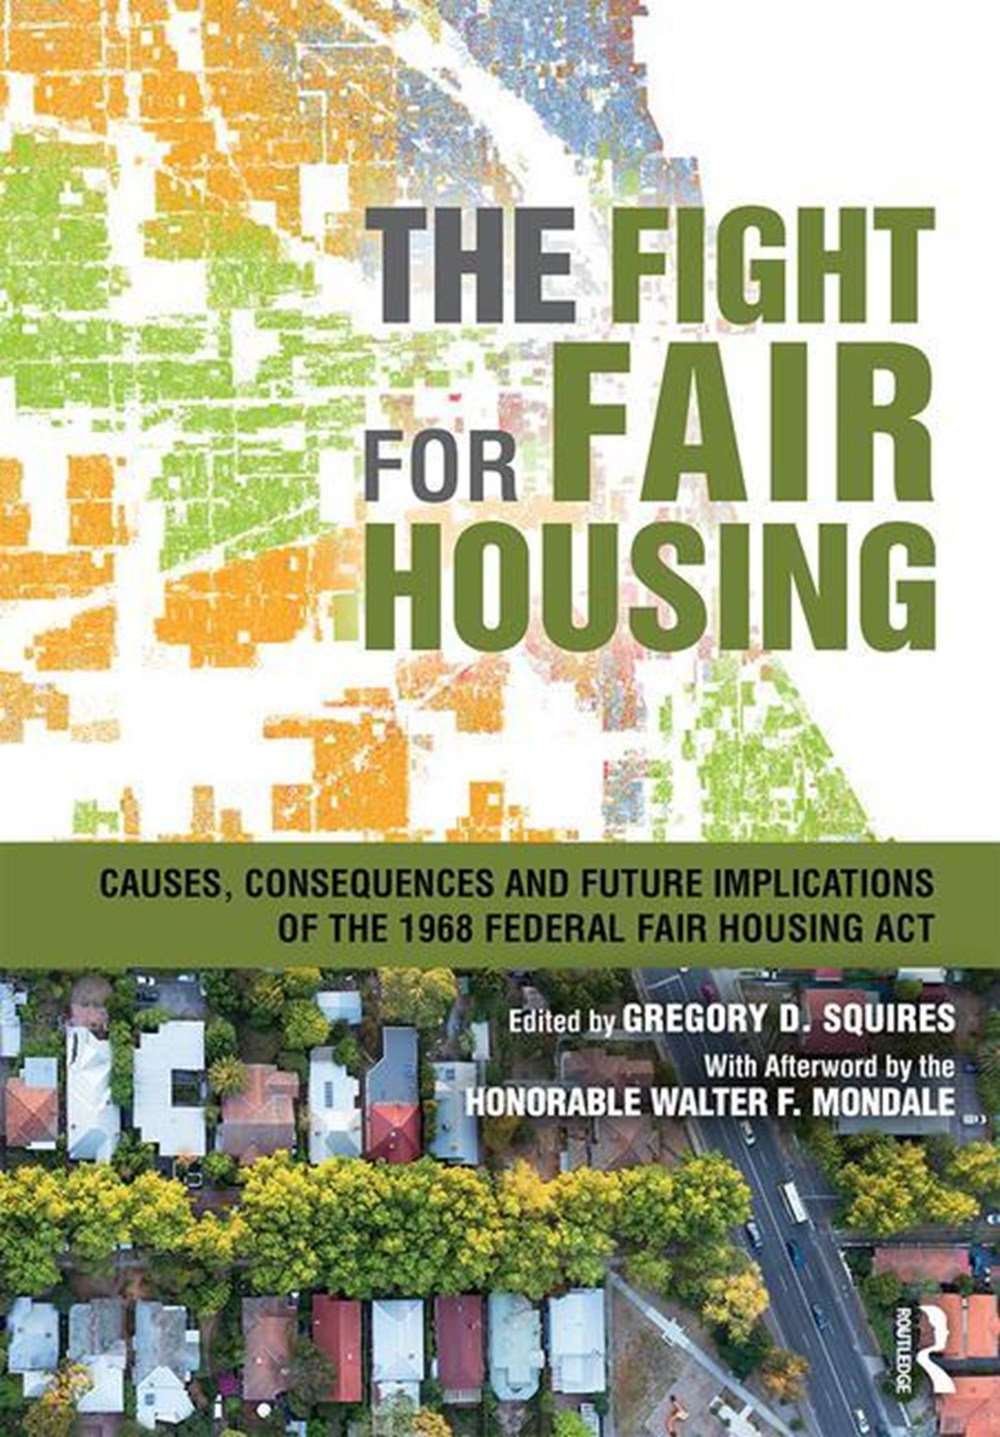 Fight for Fair Housing Causes, Consequences, and Future Implications of the 1968 Federal Fair Housin